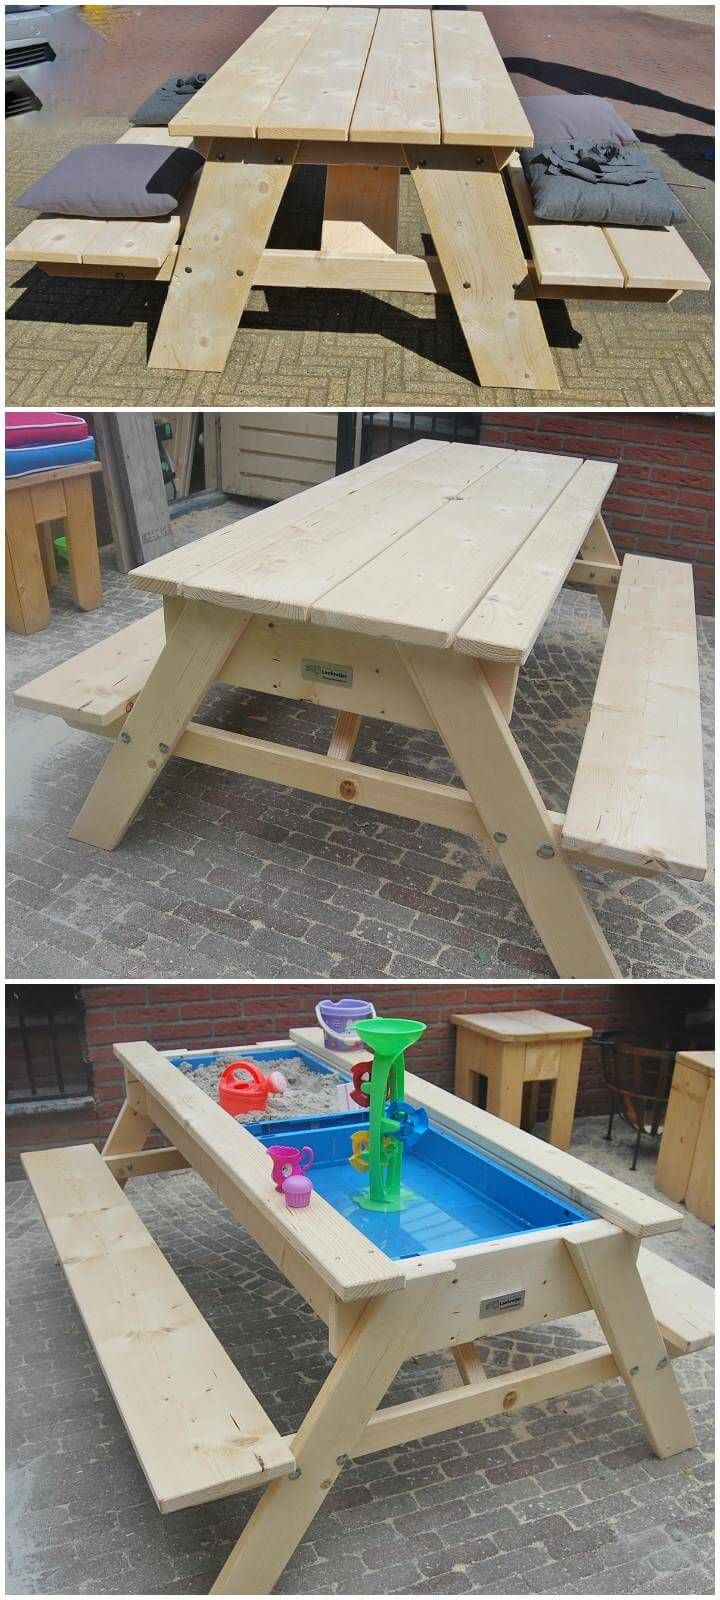 Diy Picnic Table Into Sand And Water Fun Table Kids Picnic Table Picnic Table Plans Toddler Picnic Table